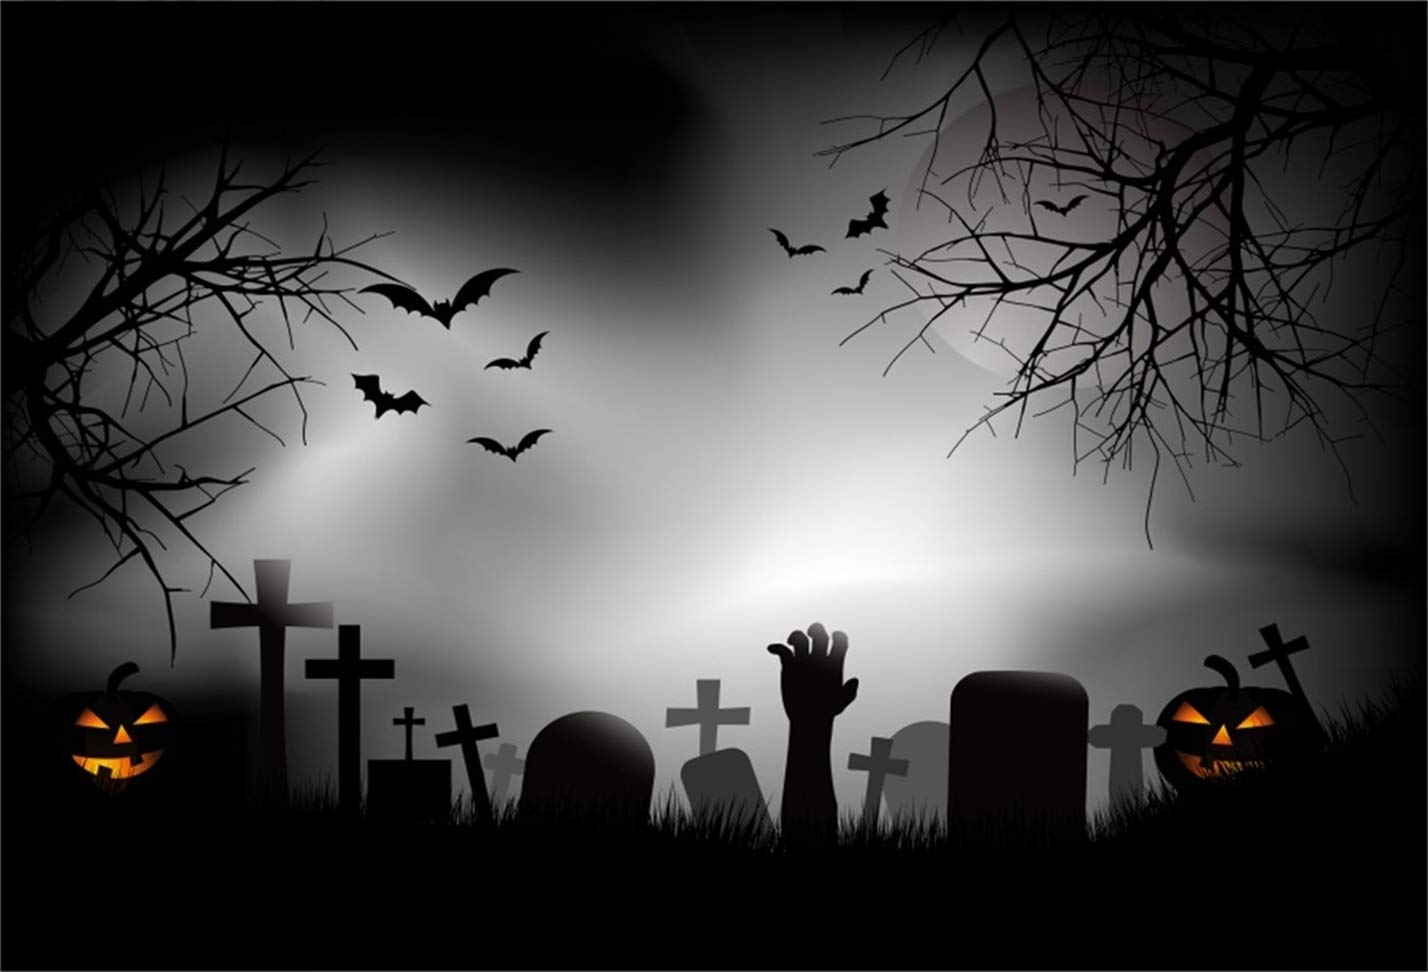 1428x972 - Scary Halloween Background 16